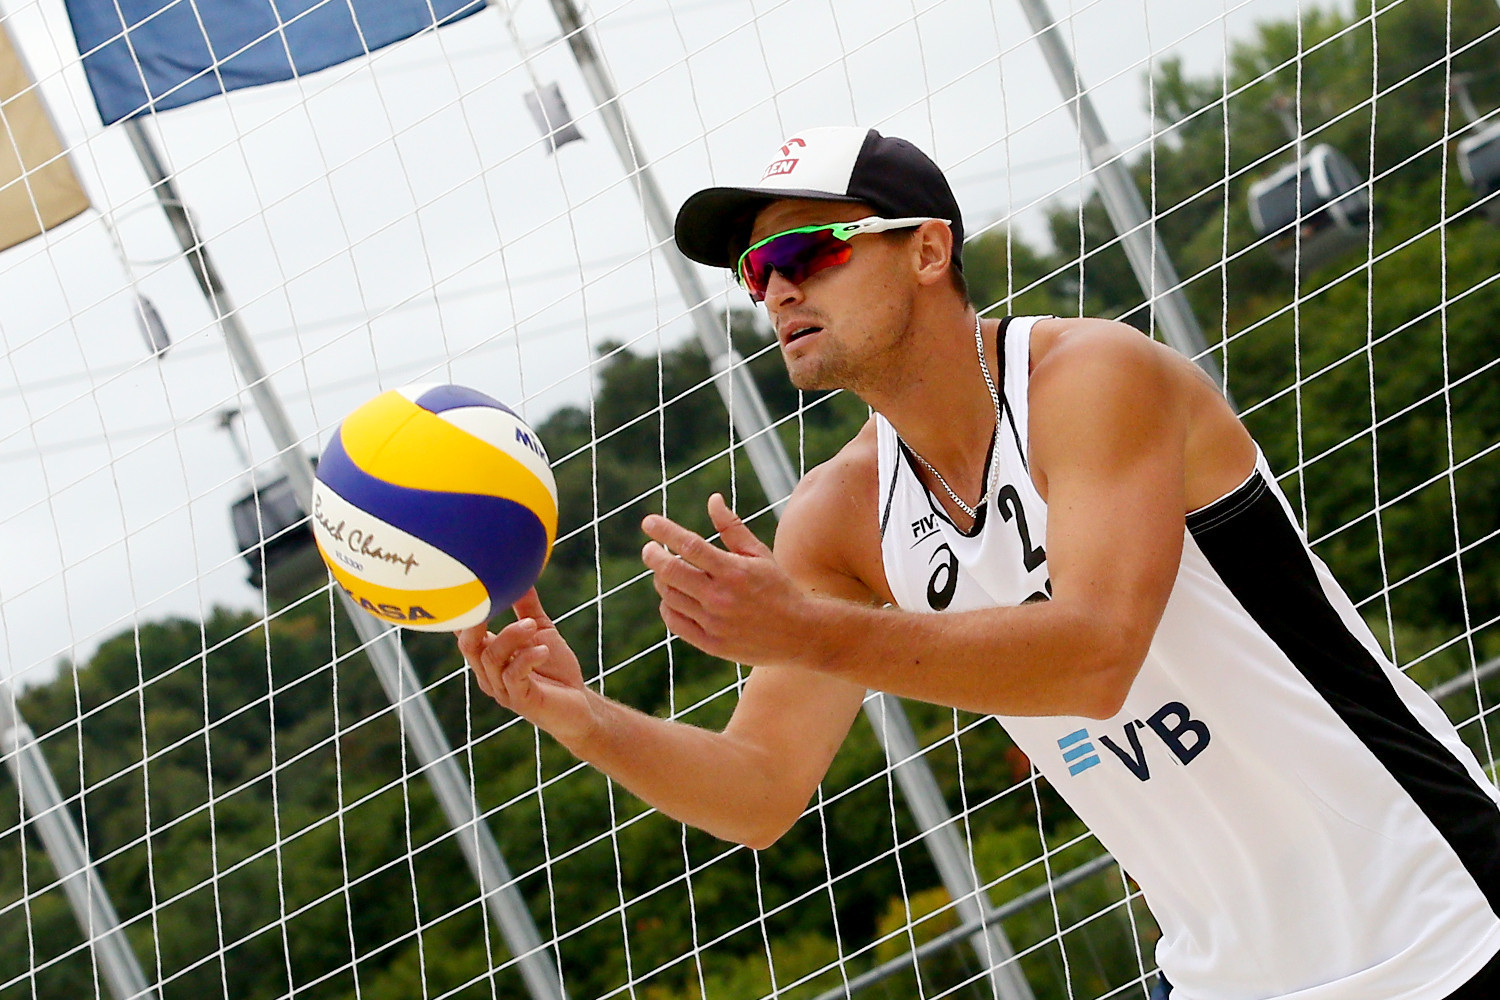 Poland's Maciej Rudol and Jakub Szalankiewicz defied the seedings to reach the main draw of the men's event ©FIVB